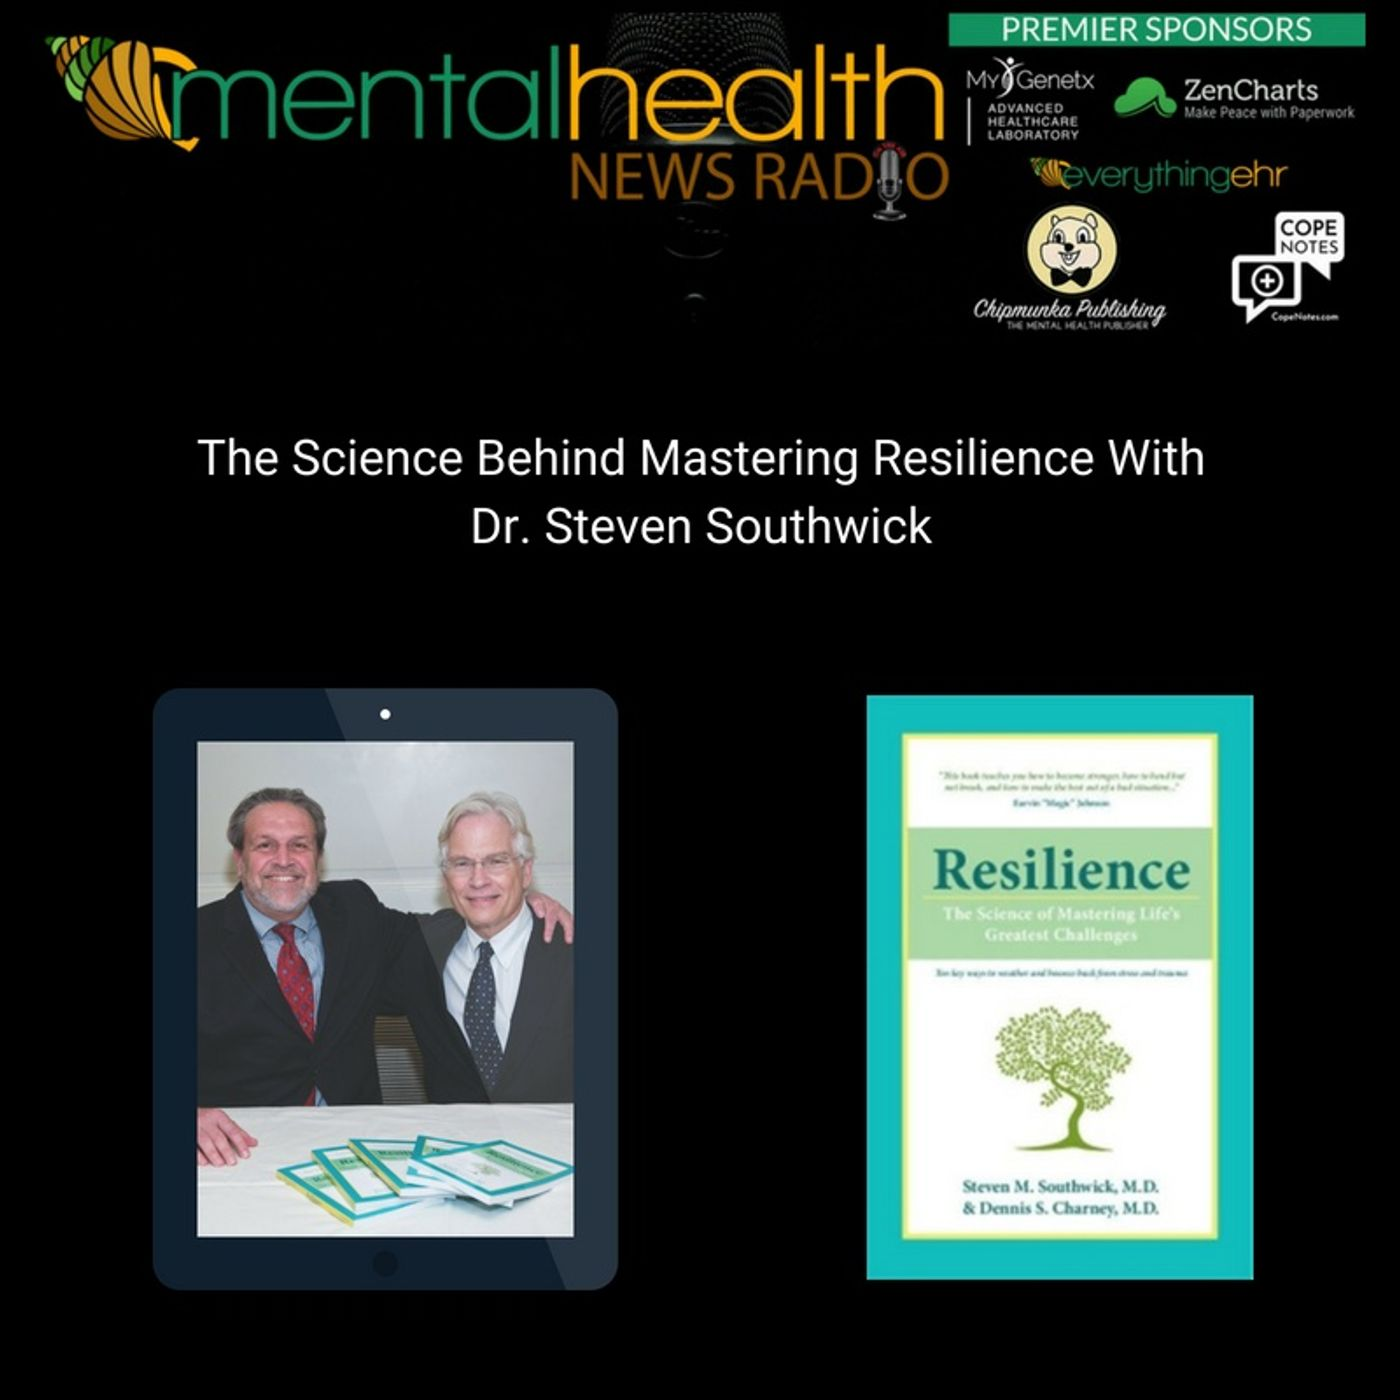 Mental Health News Radio - The Science Behind Mastering Resilience With Dr. Steven Southwick